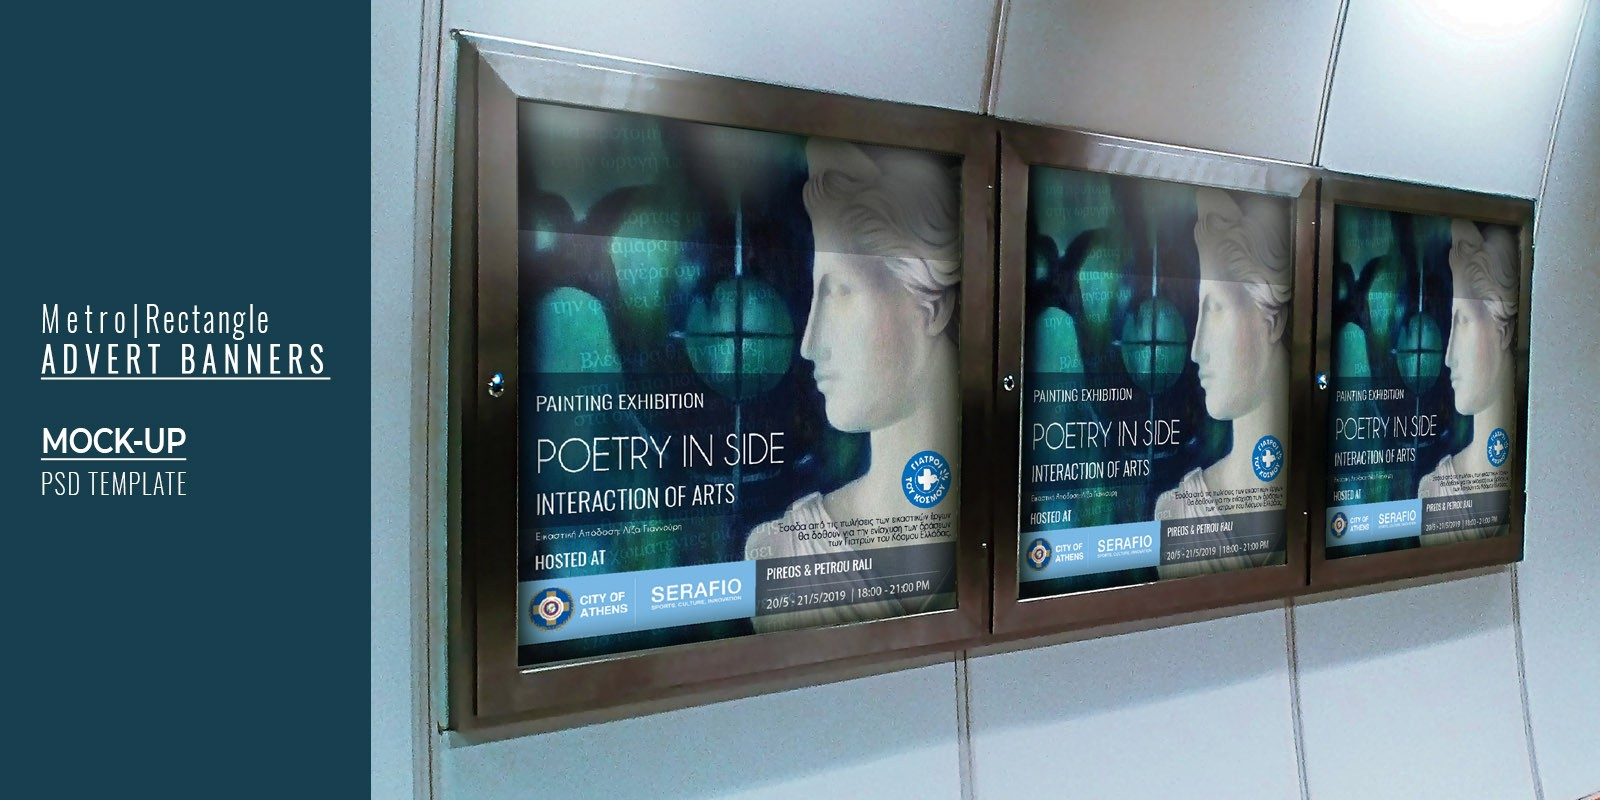 Metro Rectangle Banners Advert Mock-up - PSD